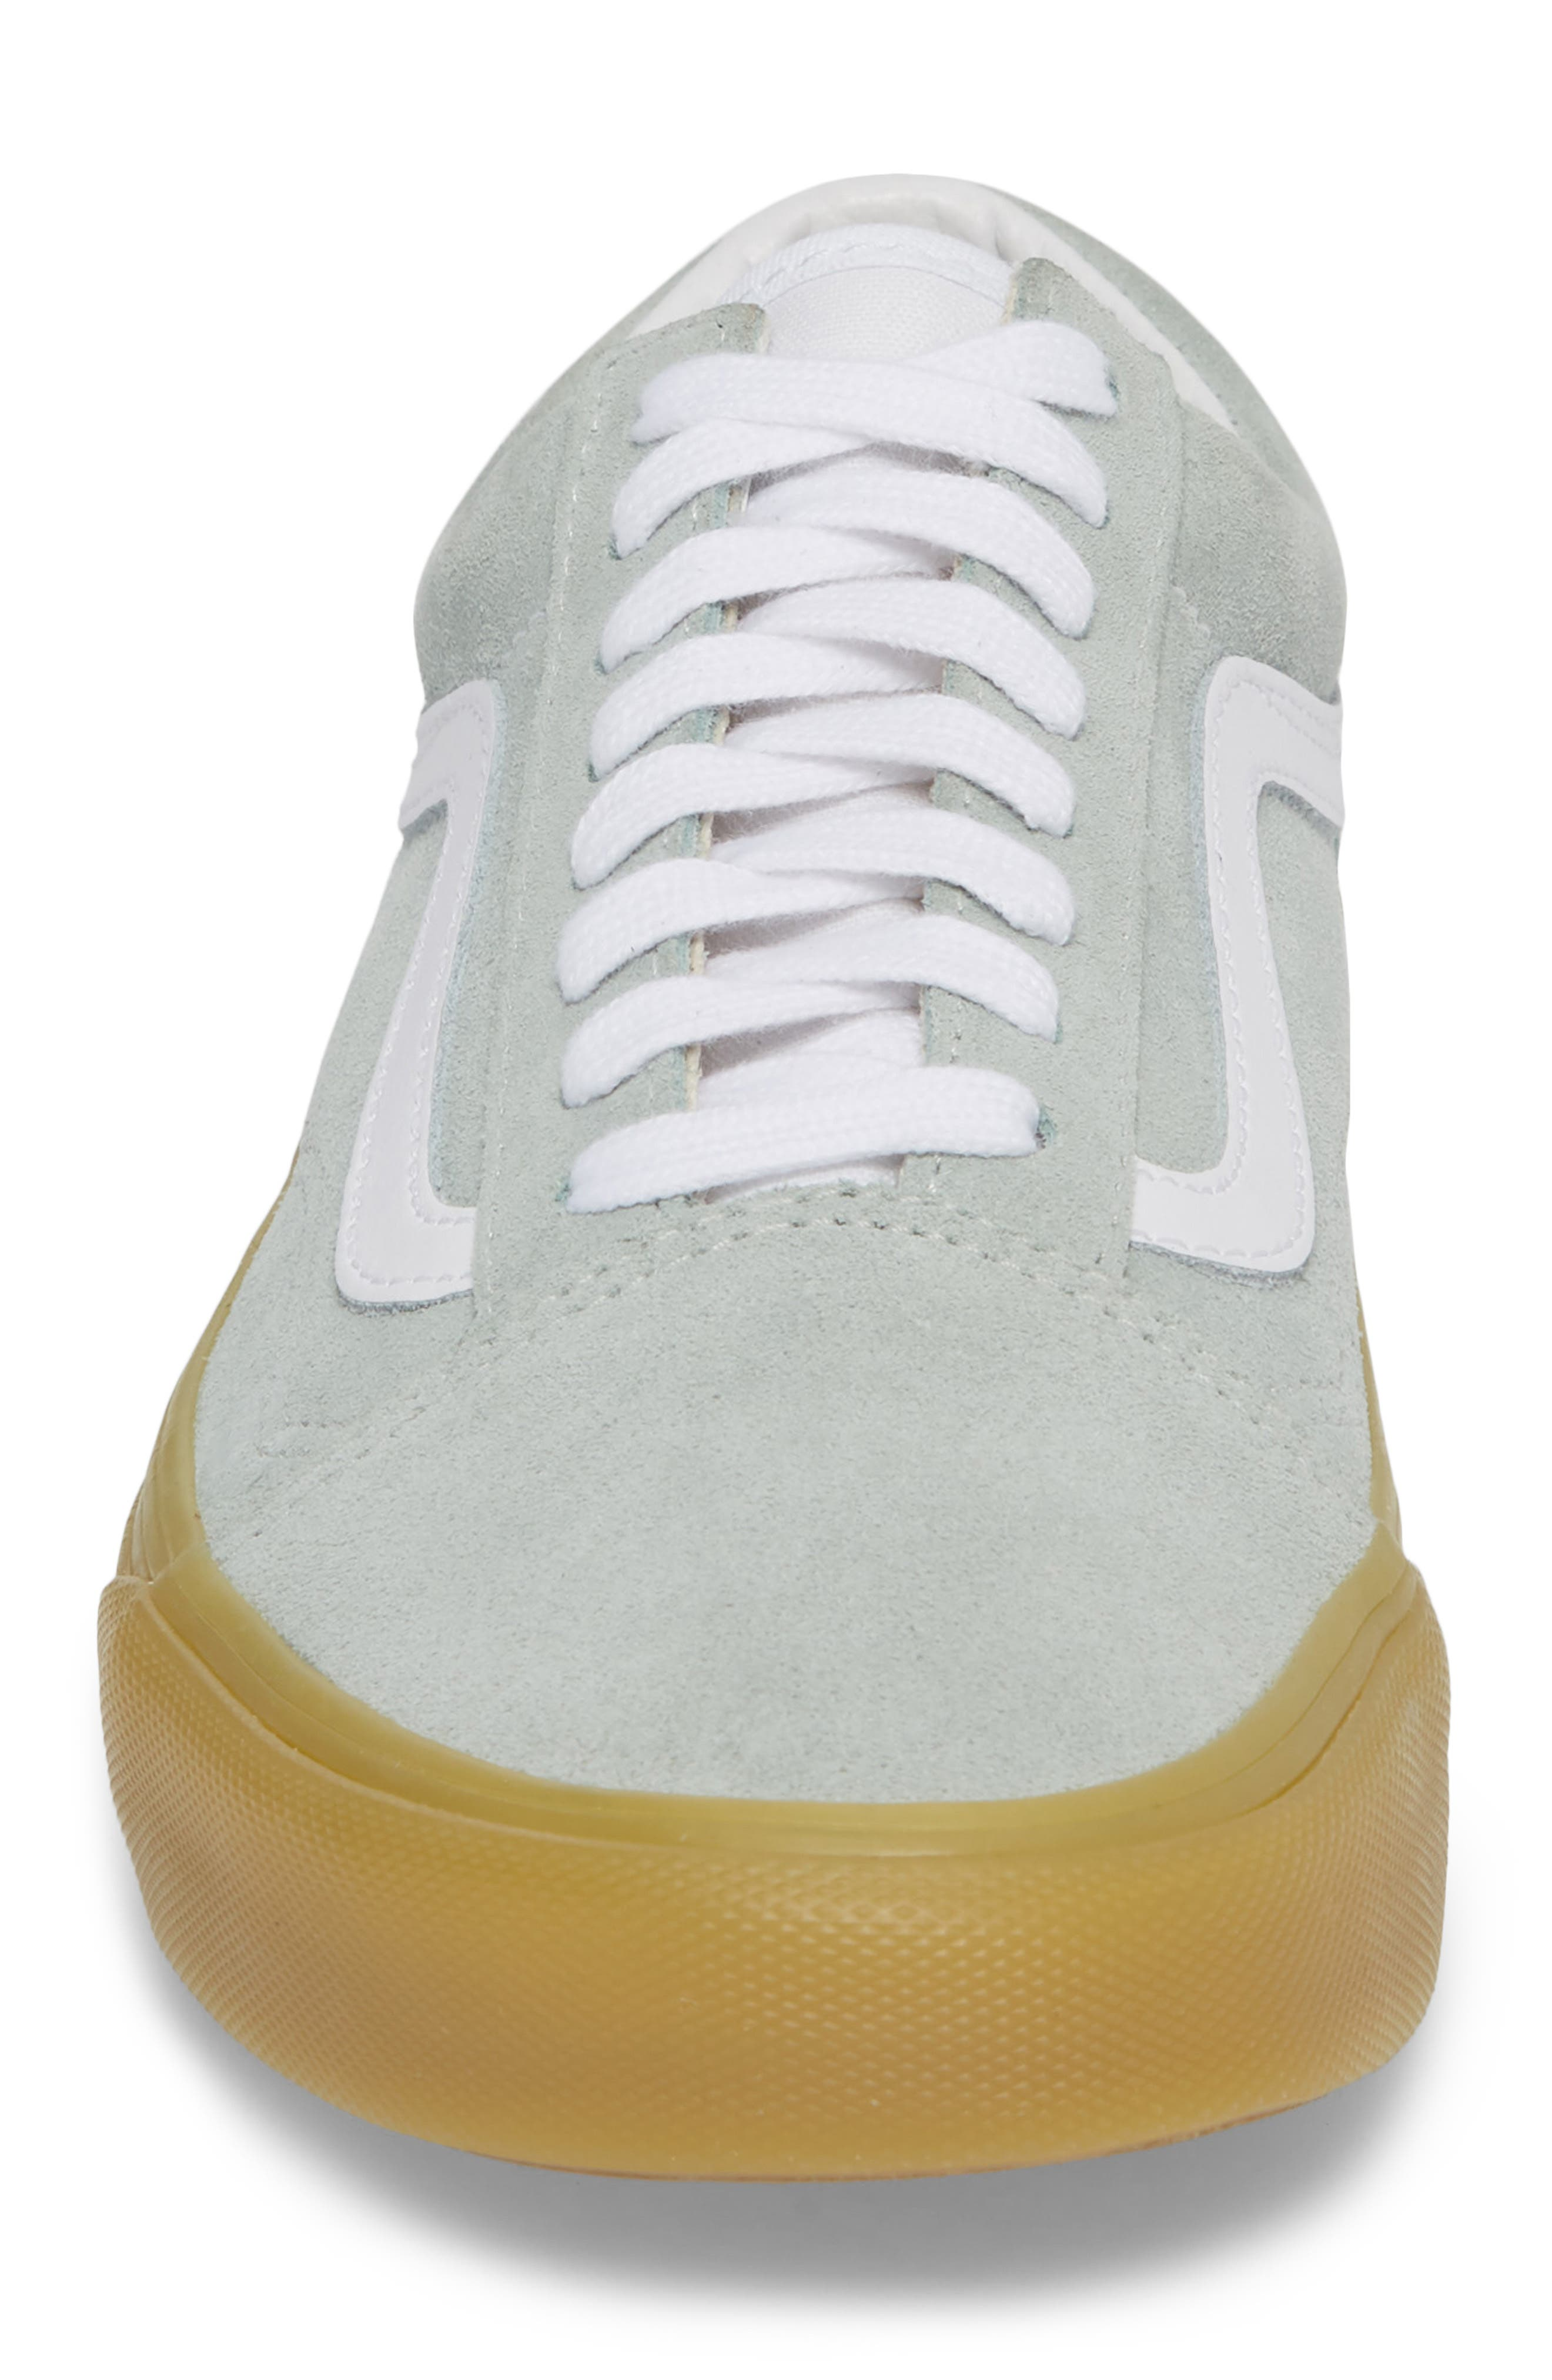 Gum Old Skool Sneaker,                             Alternate thumbnail 4, color,                             020